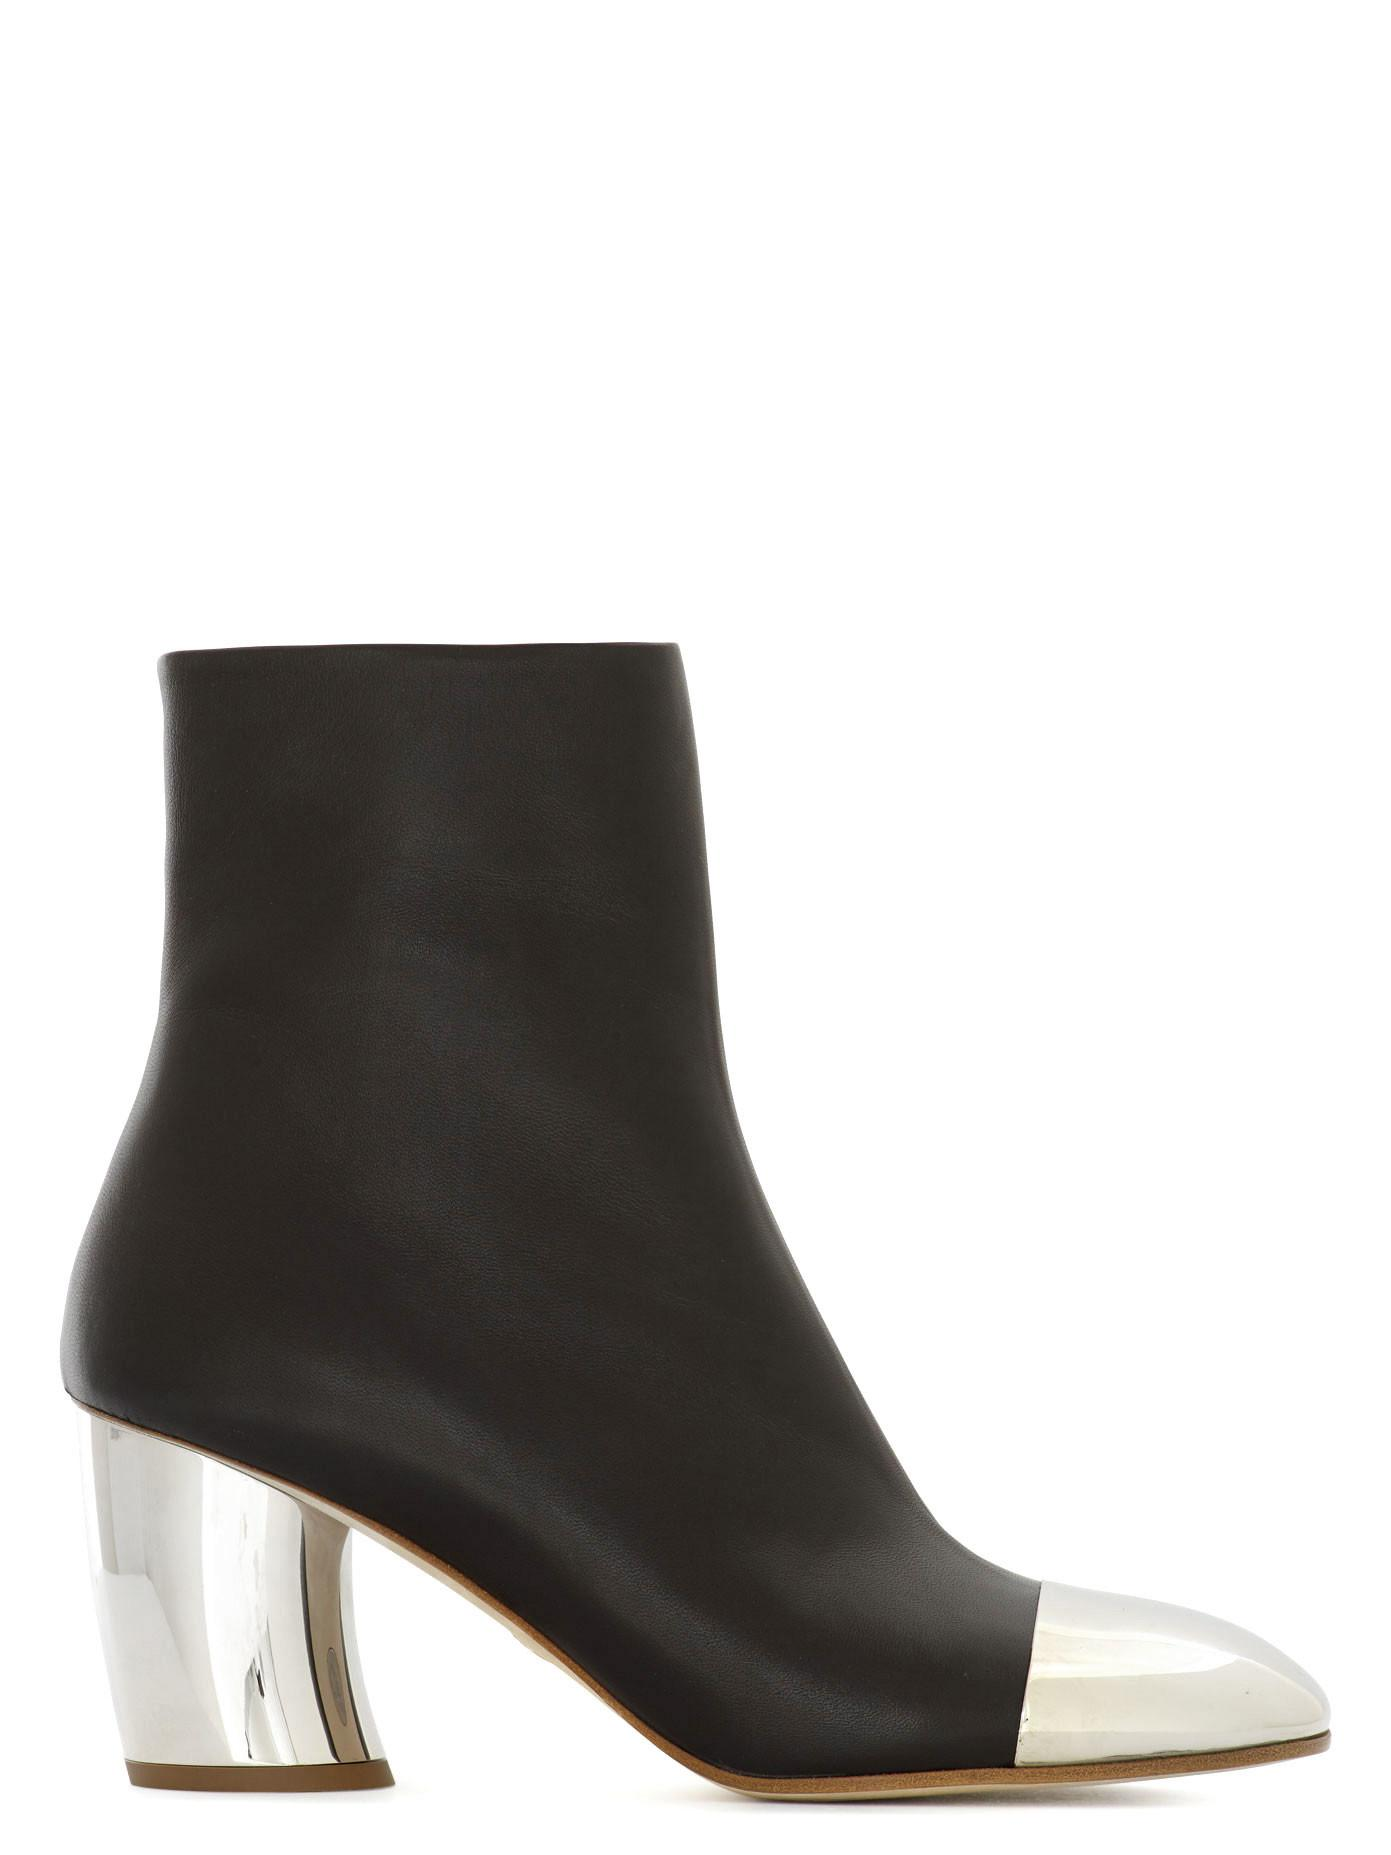 fashion shoes proenza schouler gold heel leather ankle